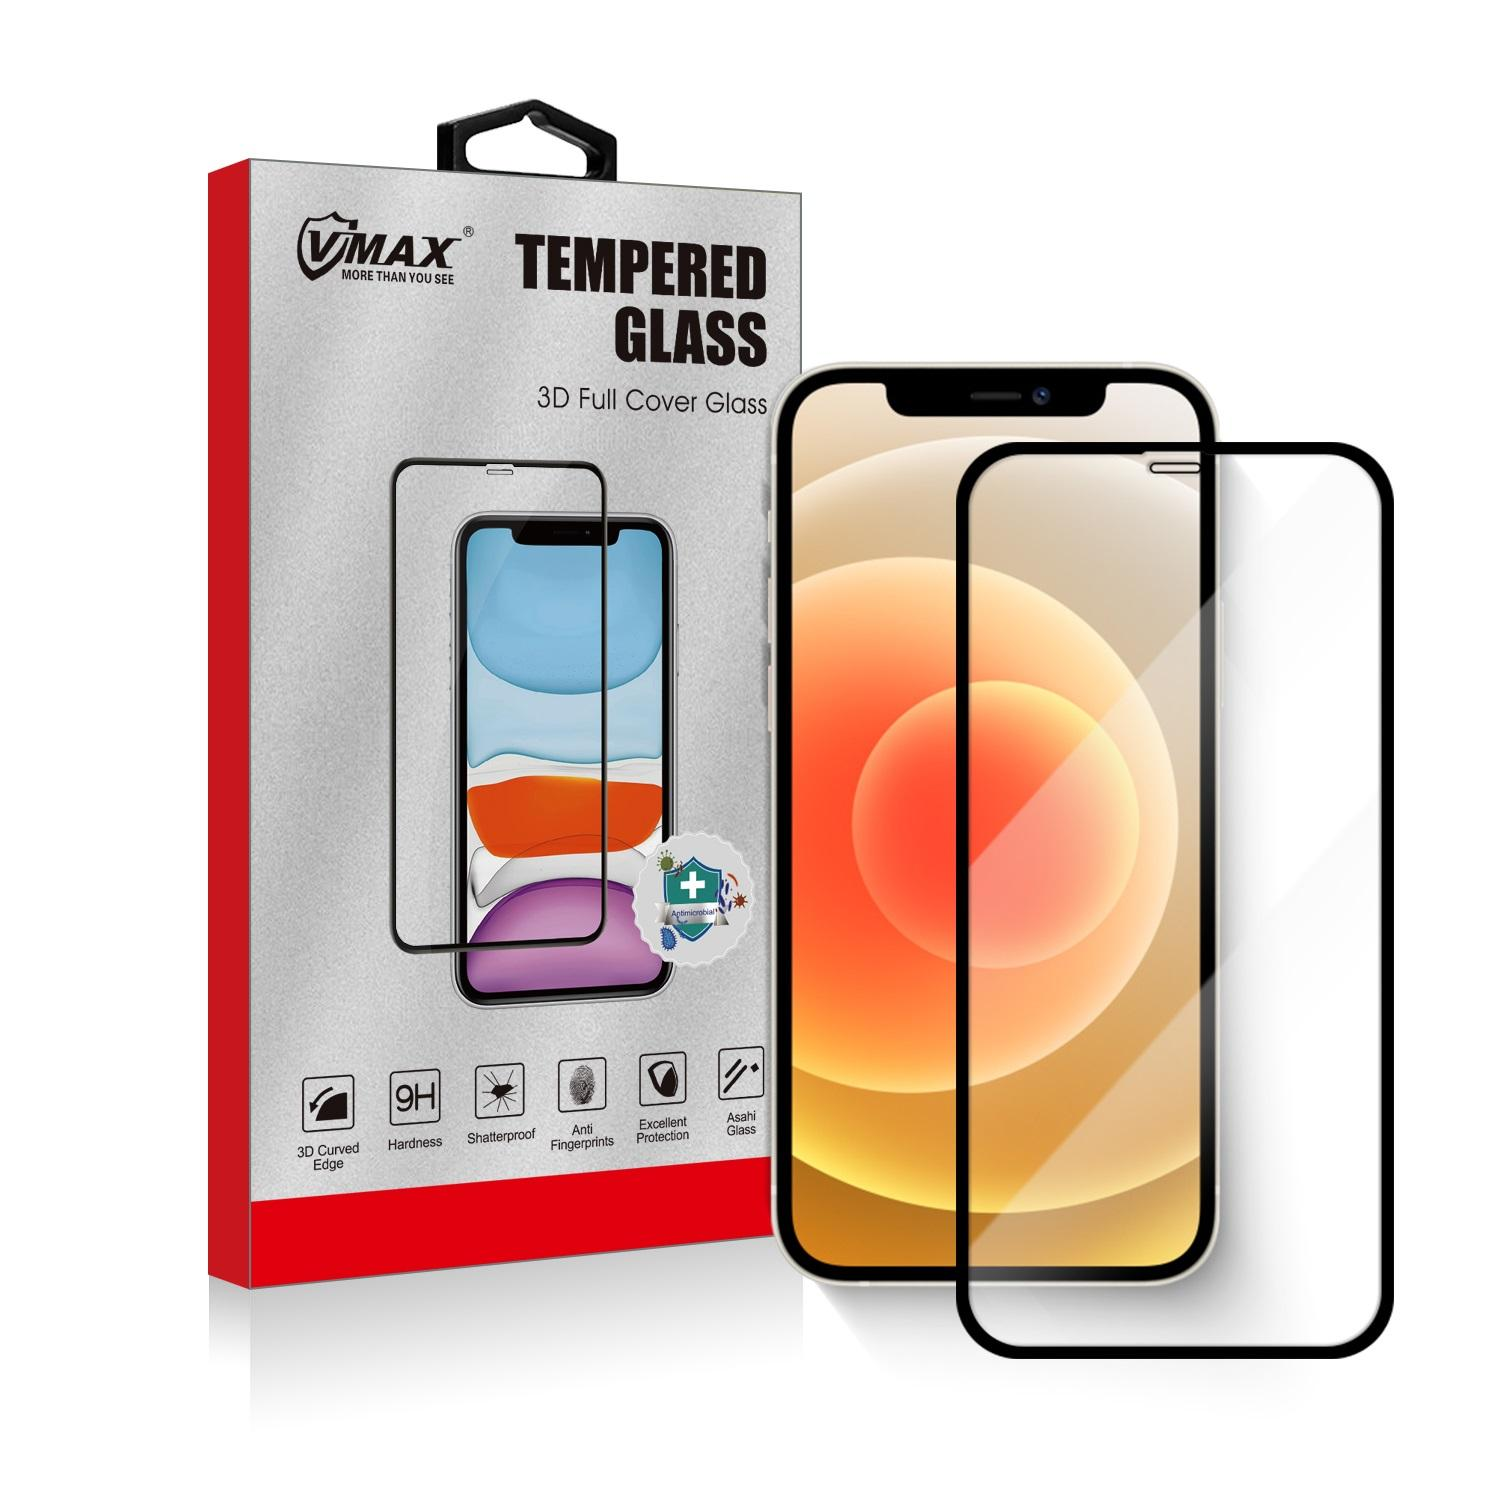 New! Hot Sold 9H 3D curved Asahi Glass Tempered Glass For iPhone 12 11 Pro XS Max X / 8 / 8 plus with OEM Service